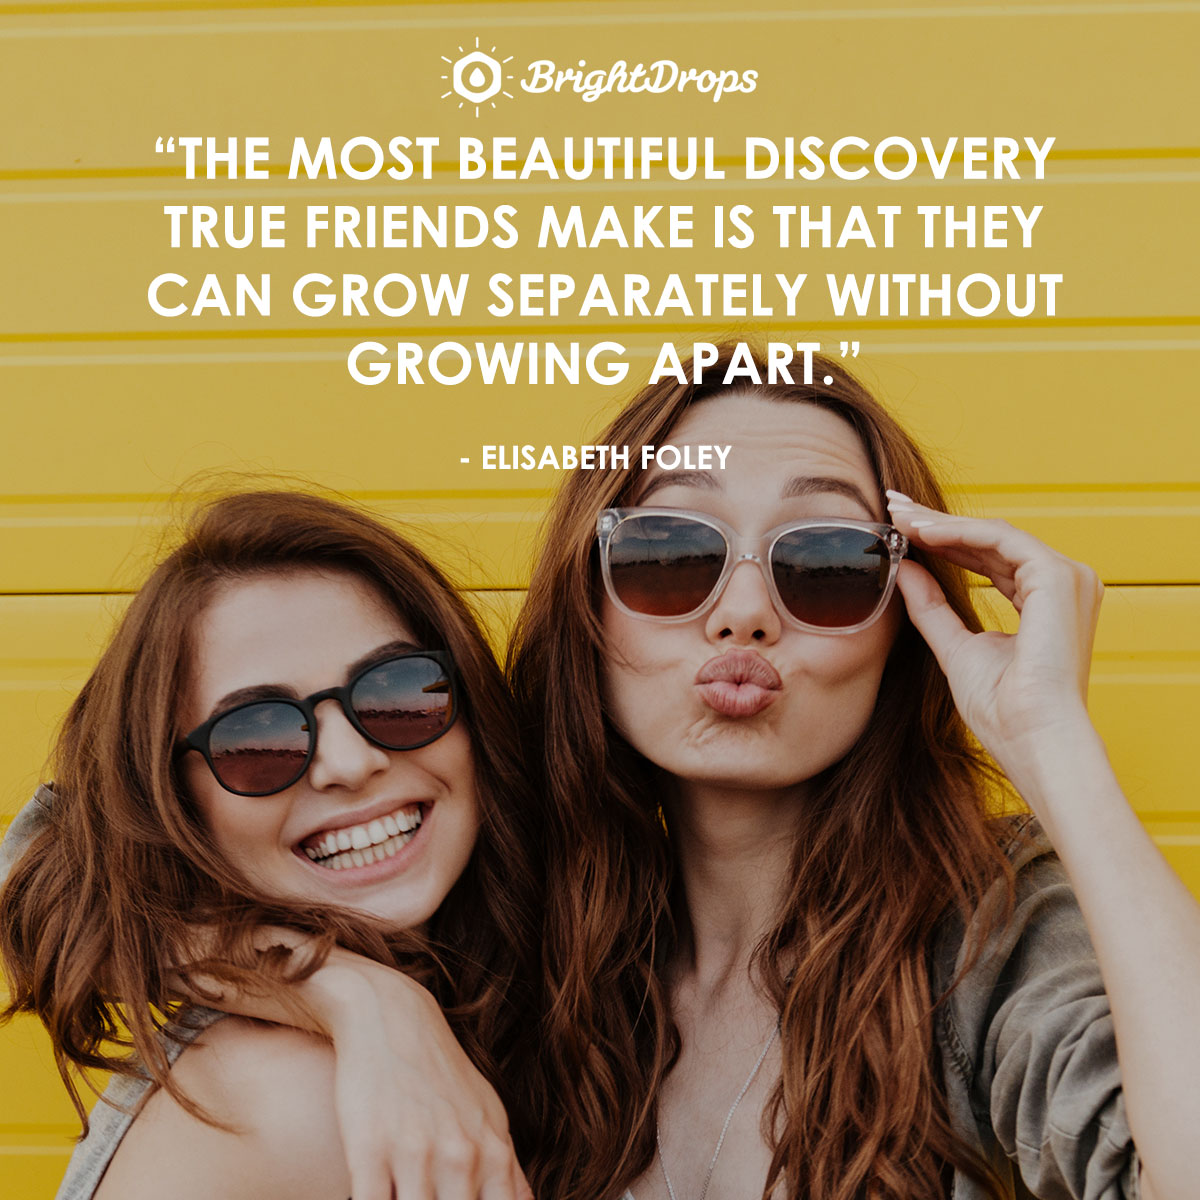 """The most beautiful discovery true friends make is that they can grow separately without growing apart."" - Elisabeth Foley"